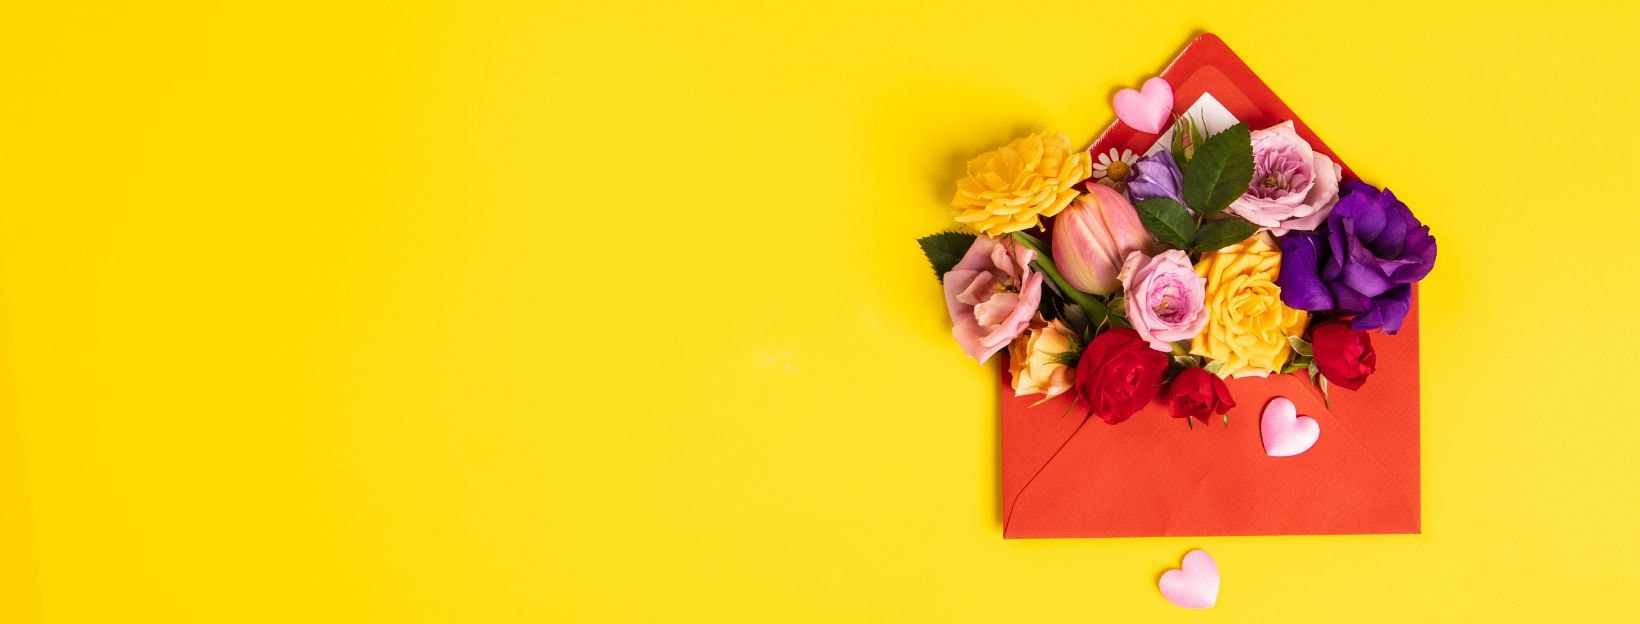 BANNER-MADQUfS6yV8-opened-red-envelope-with-flowers-arrangements-on-yellow-backgrou